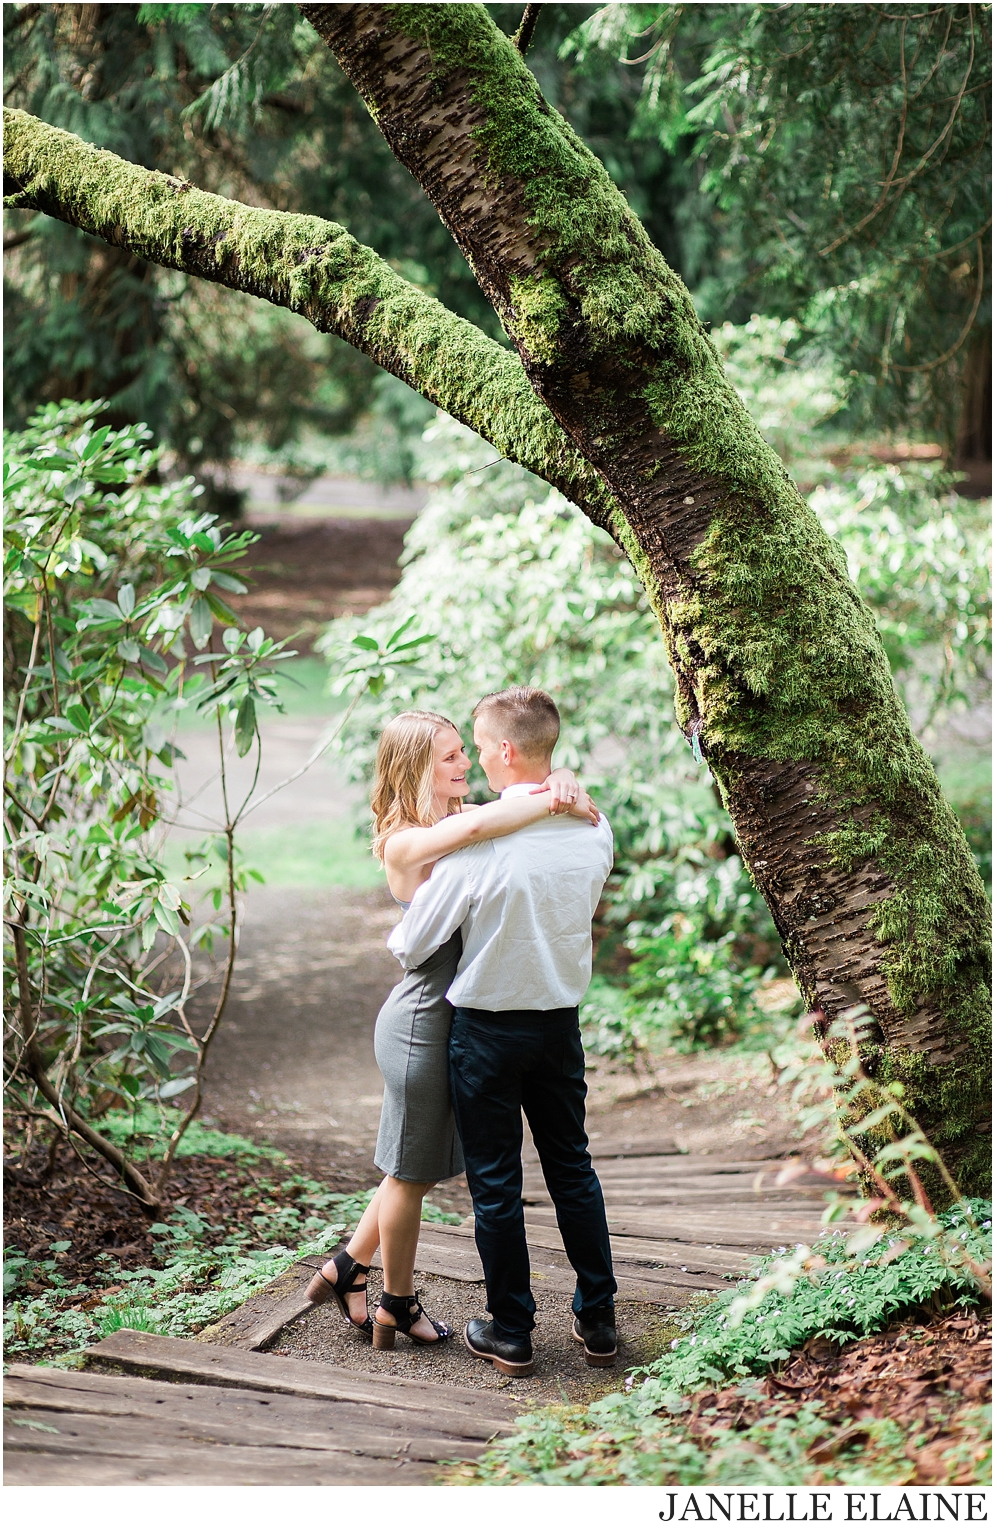 tricia and nate engagement photos-janelle elaine photography-34.jpg